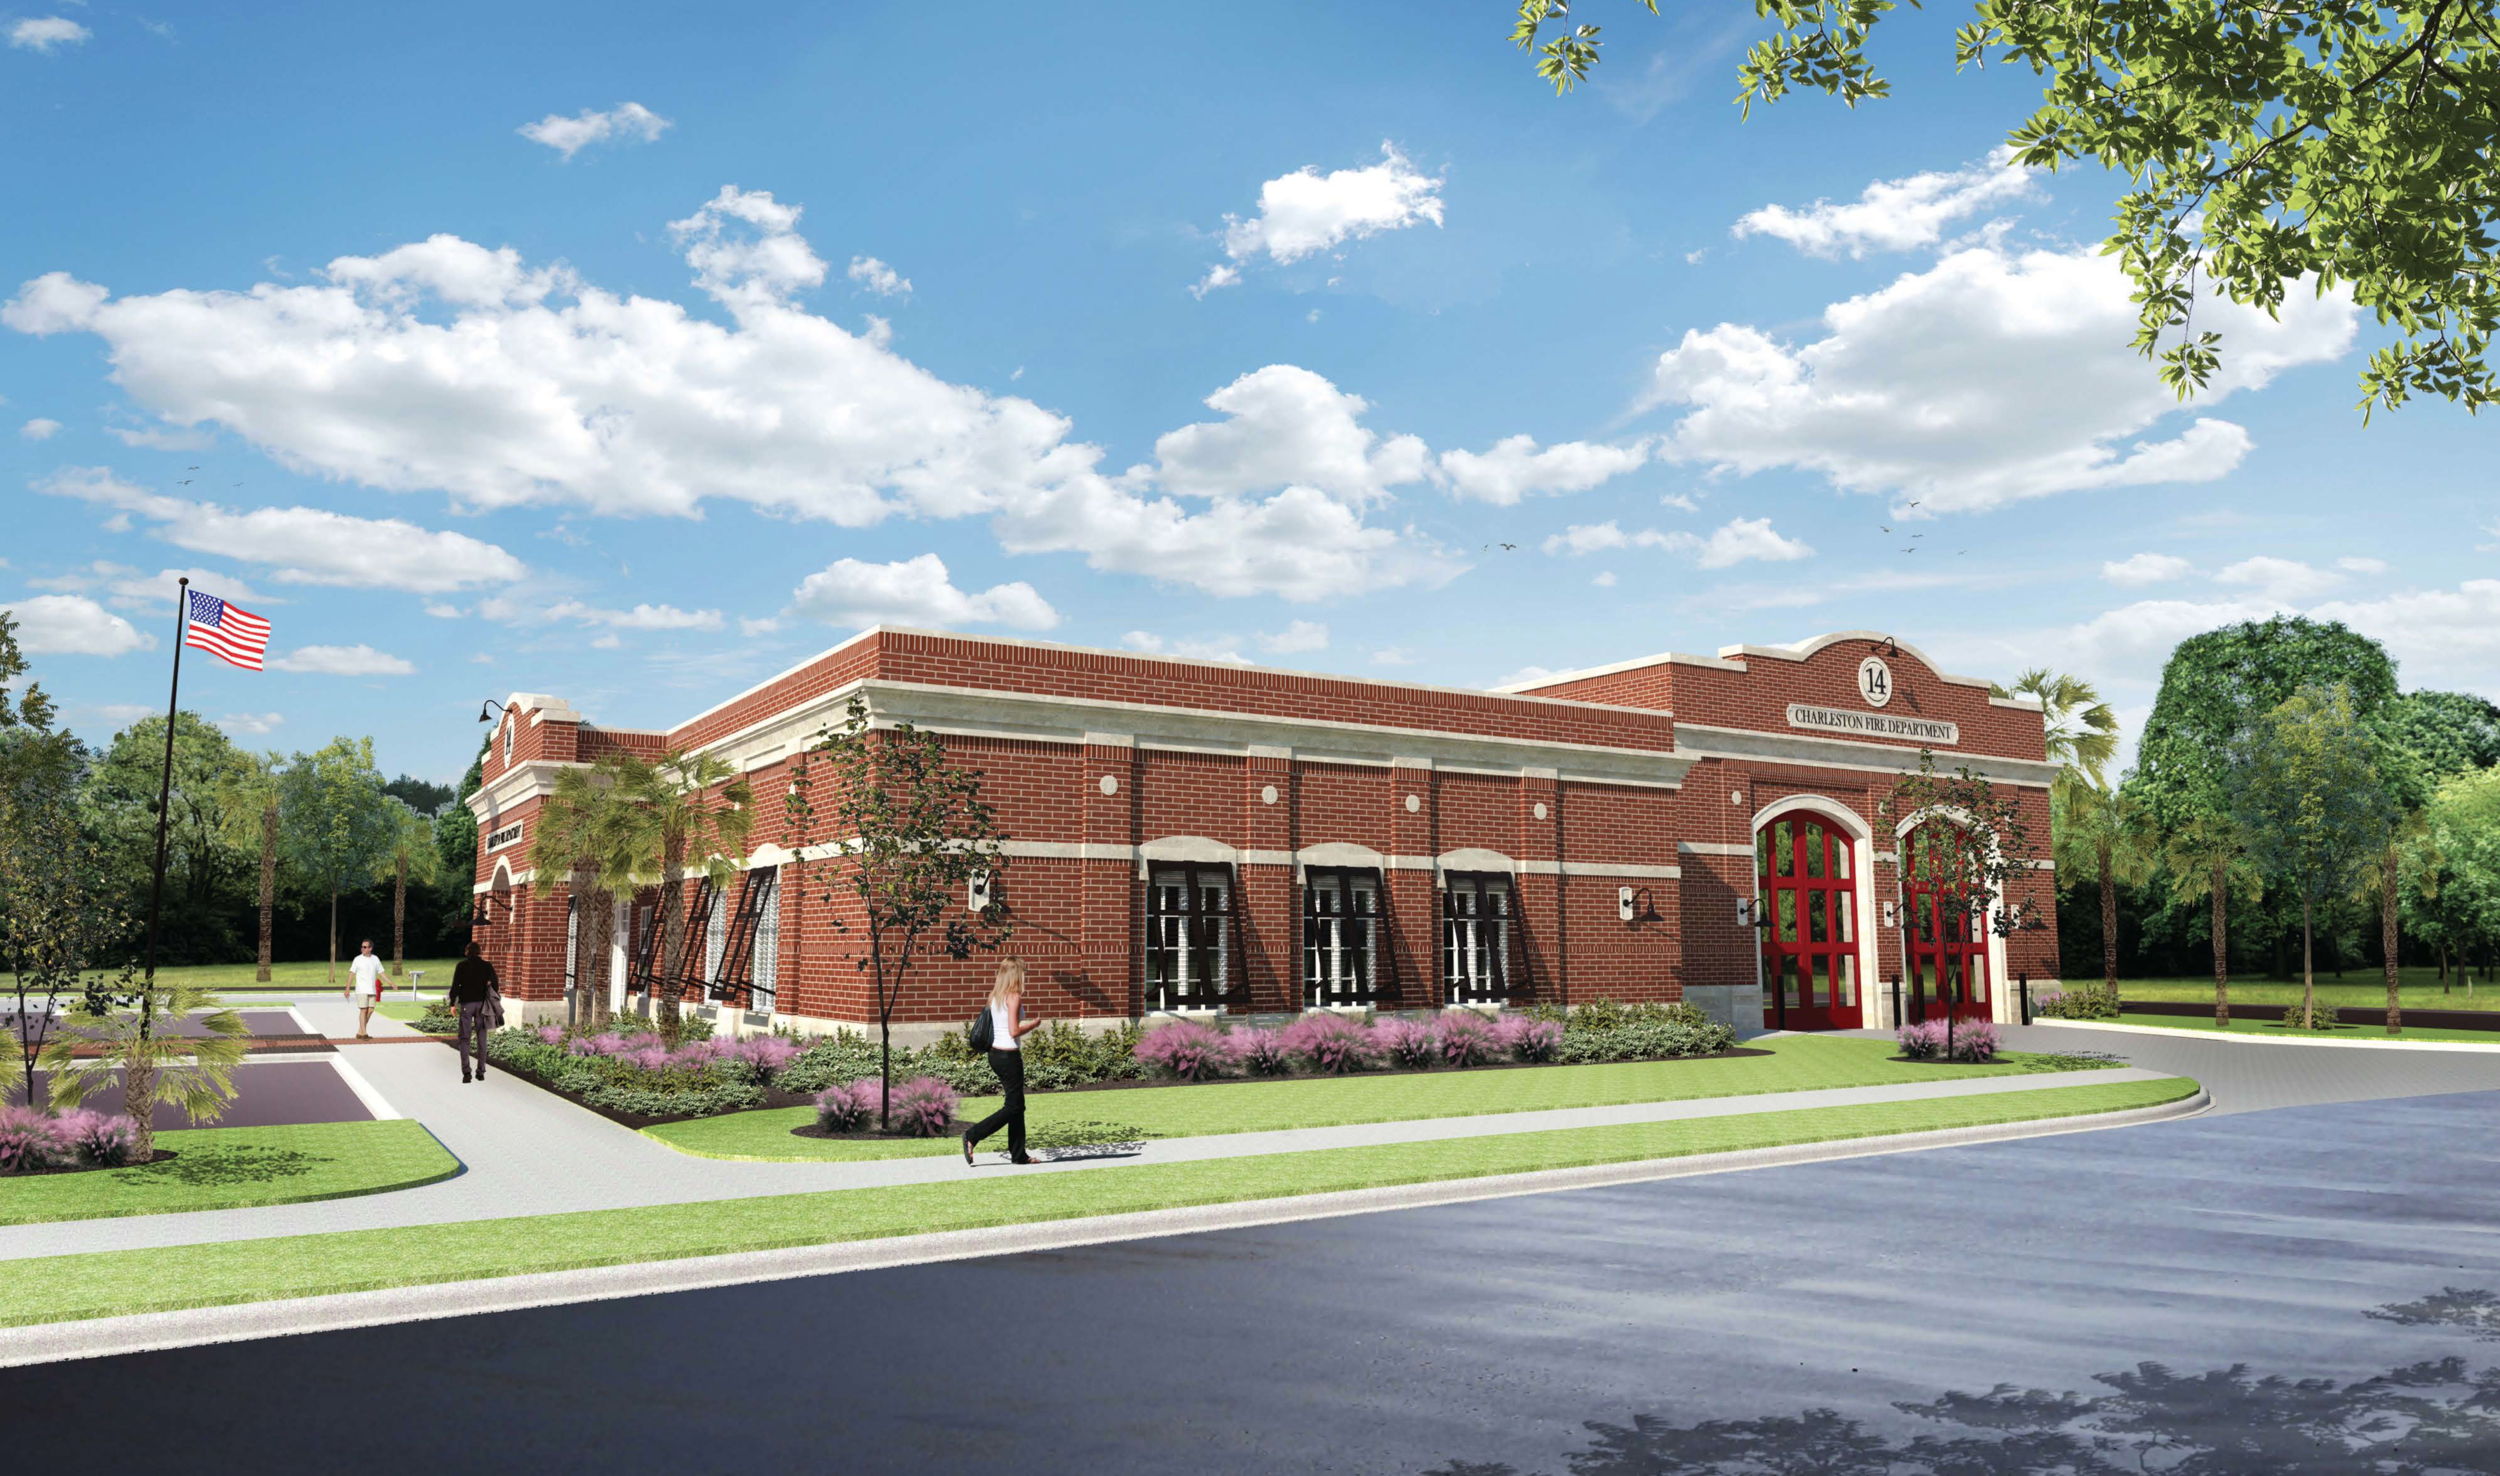 ADW-Public-Safety-Fire-Station-14-Carolina-Bay-Charleston-SC-Rendering.png